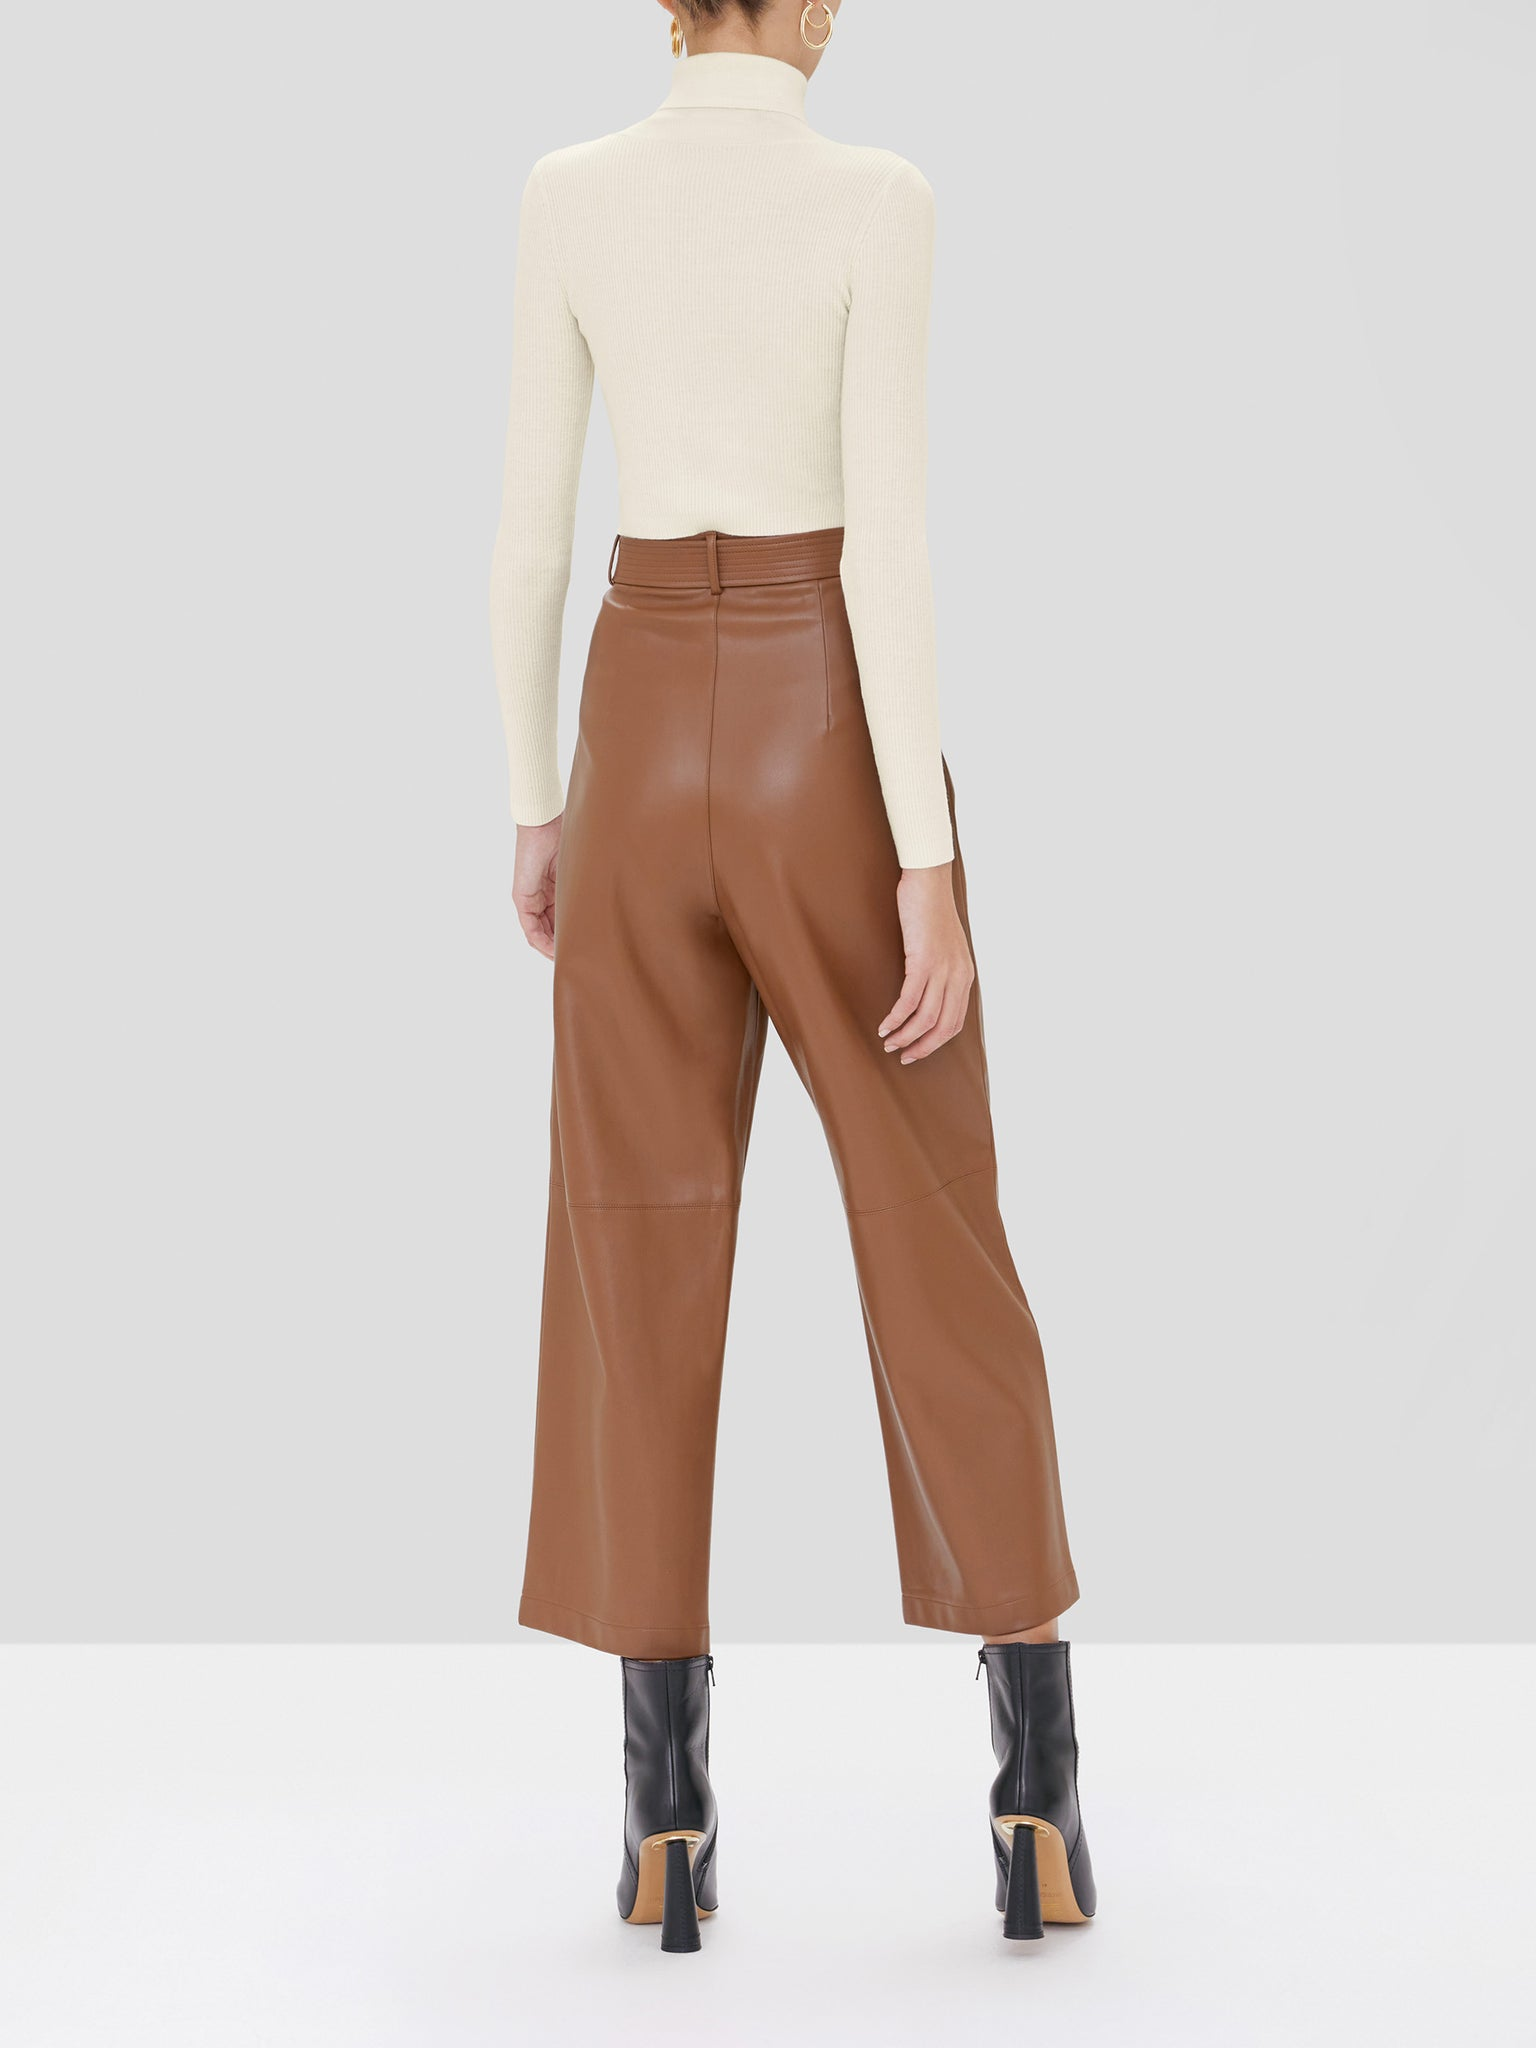 roy vegan leather pant - Rear View